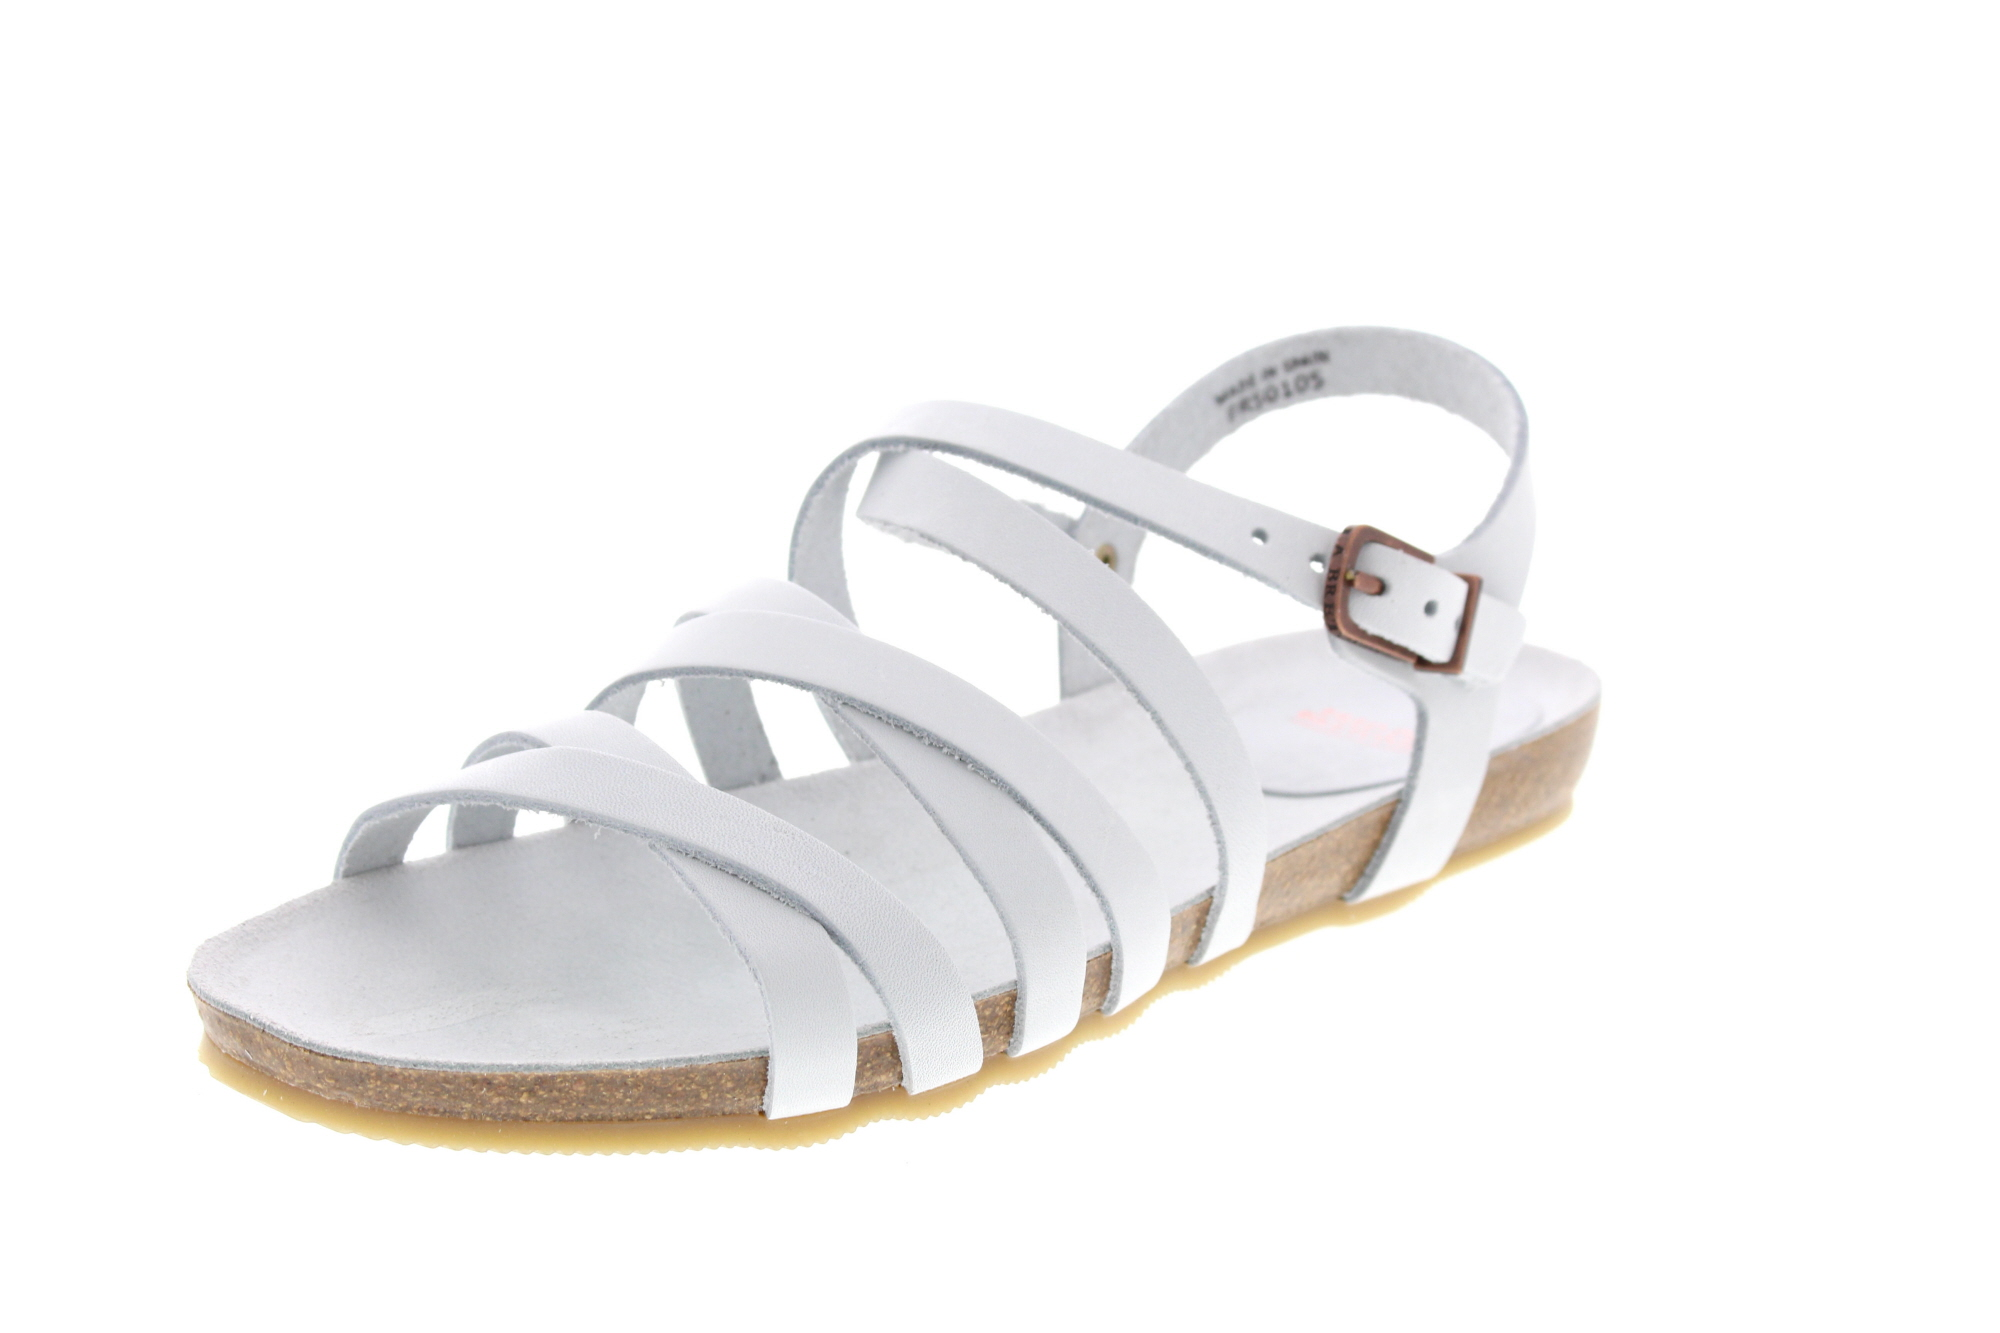 FRED DE LA BRETONIERE - Sandalen 170010028 - off white_0